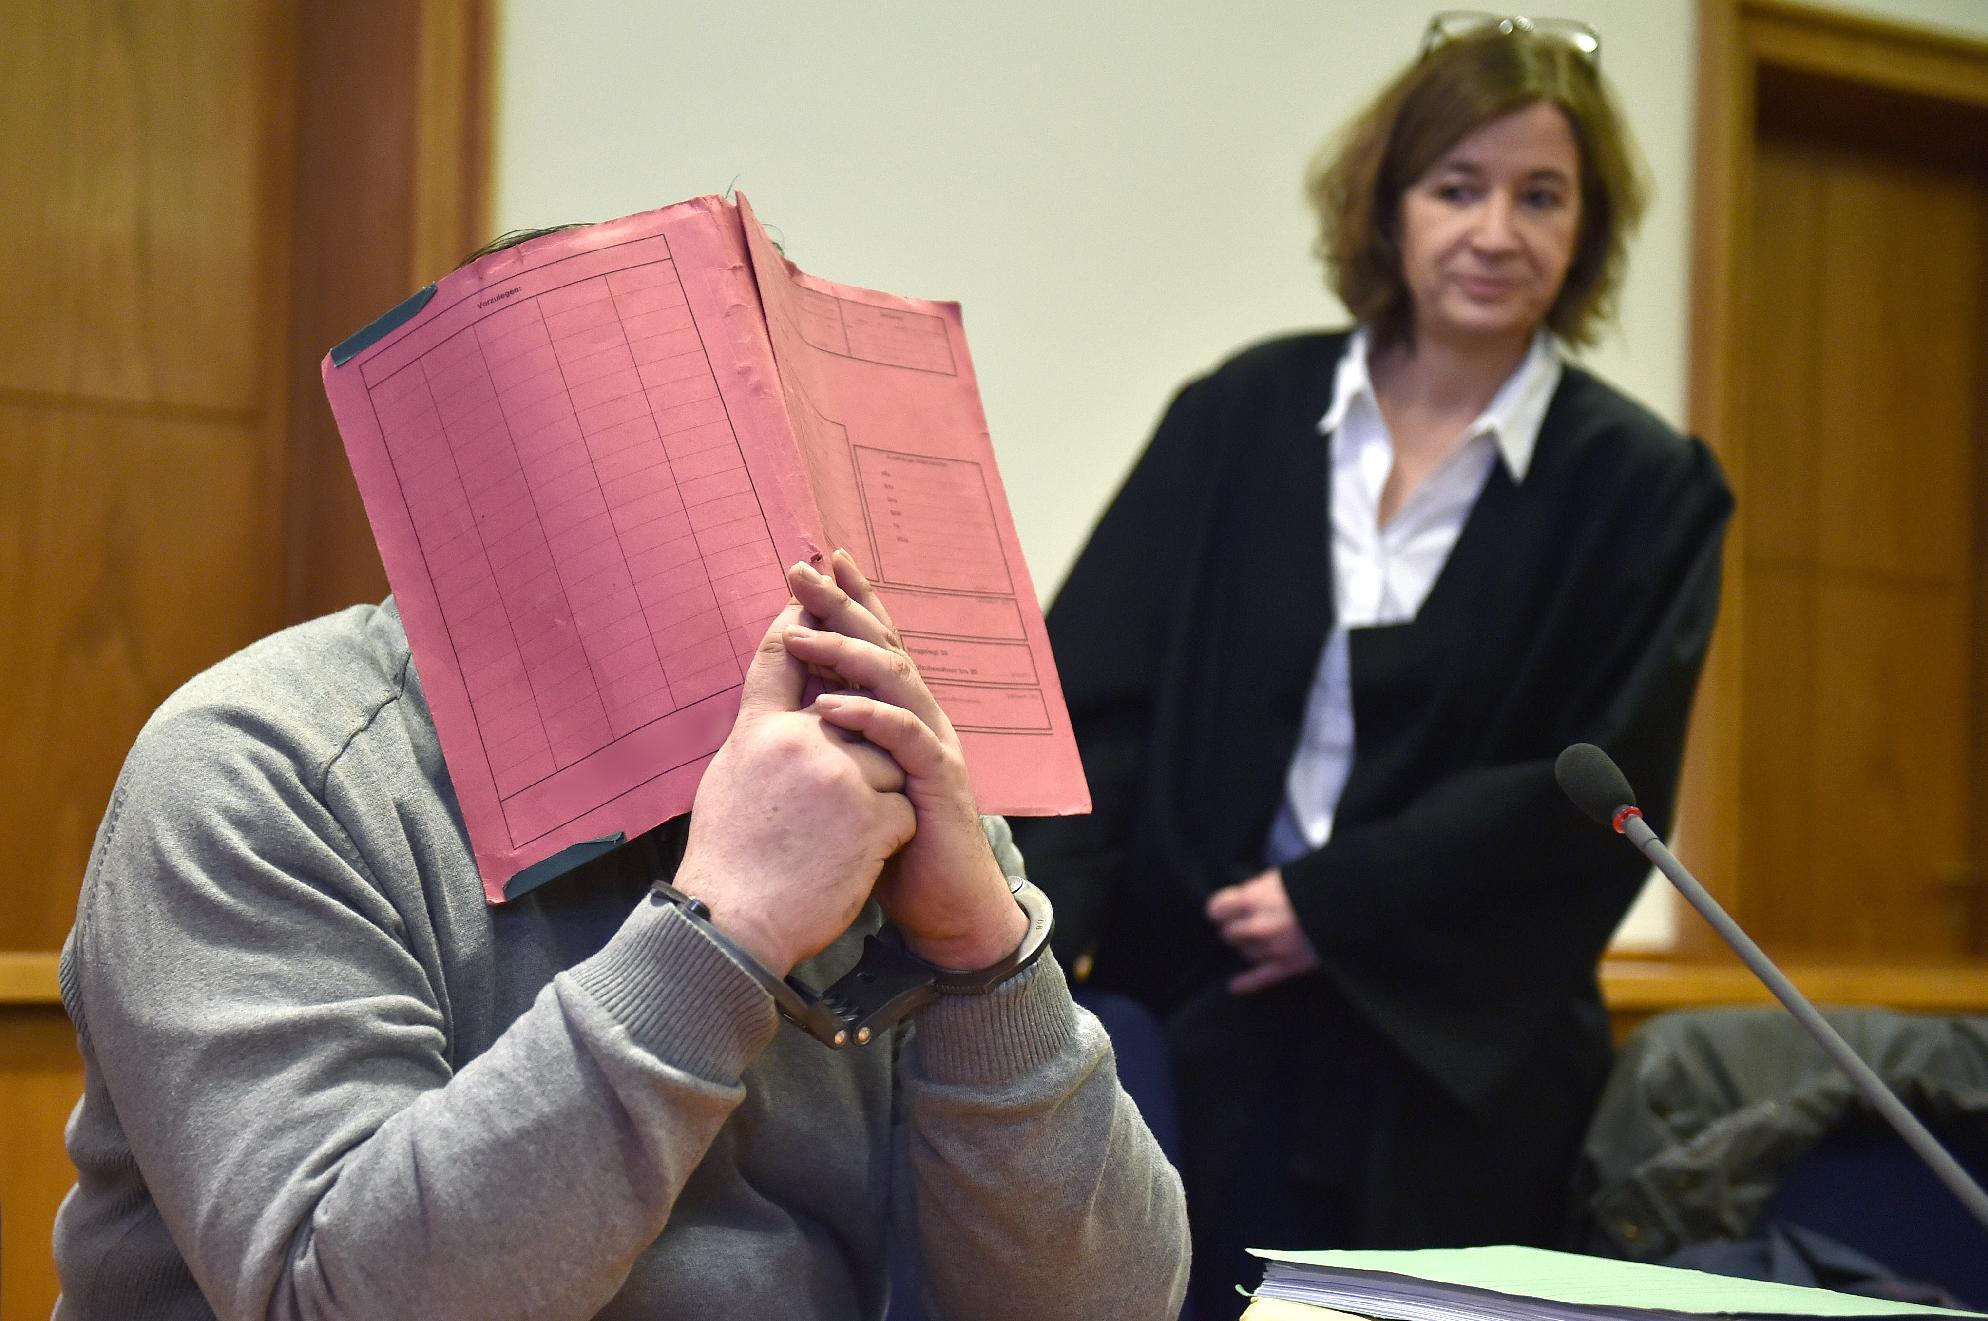 Life sentence for German nurse who killed patients